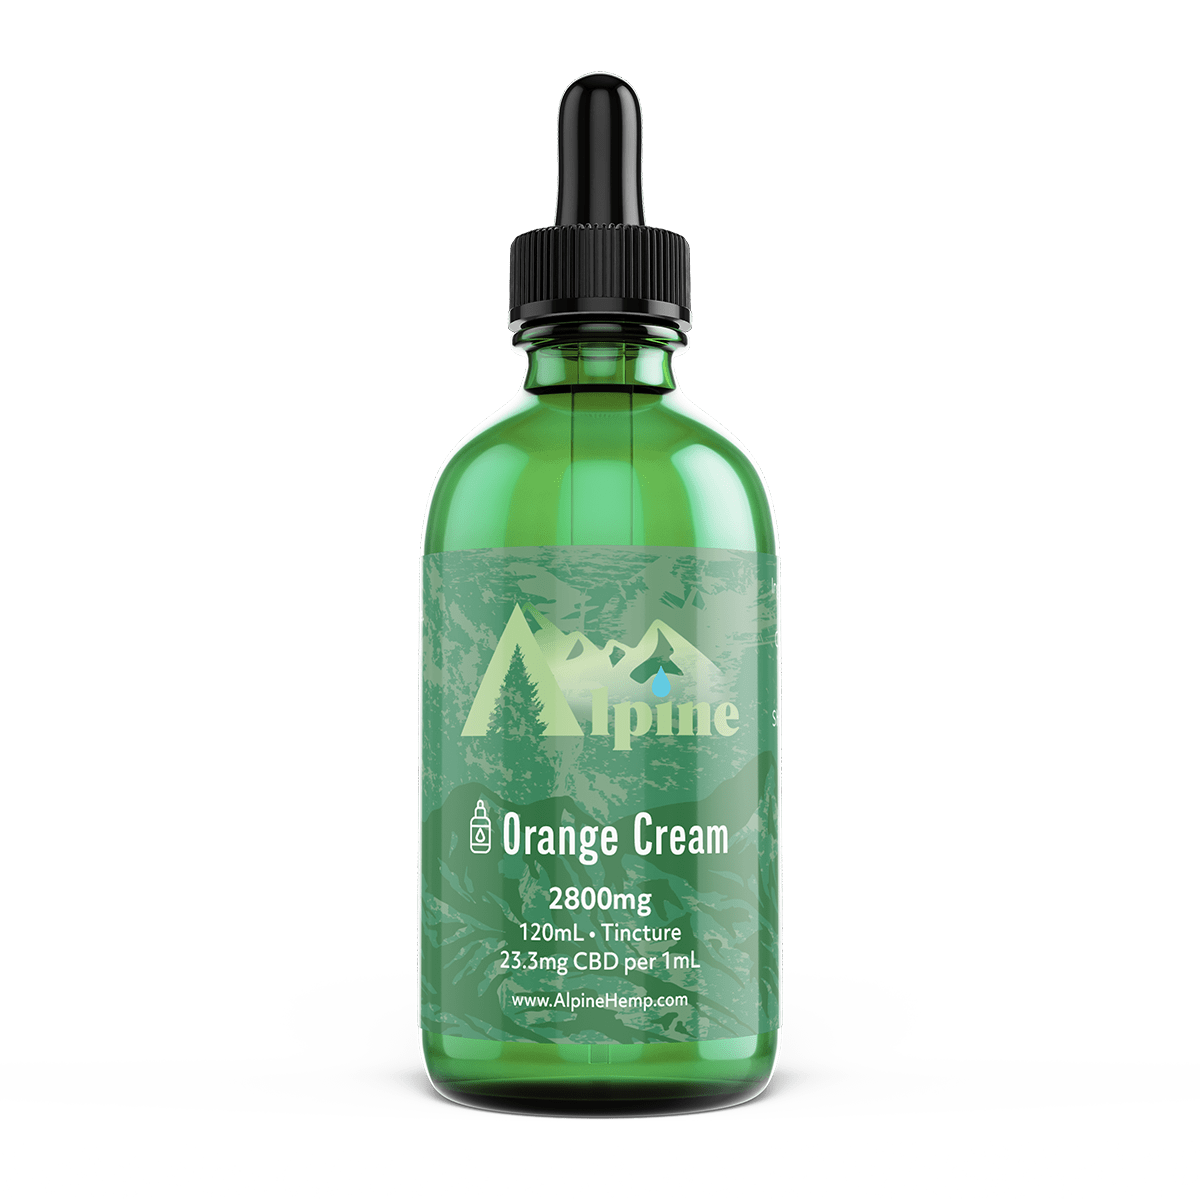 cbd, cannabidiol, hemp, cbd products, hemp products, tincture, full spectrum